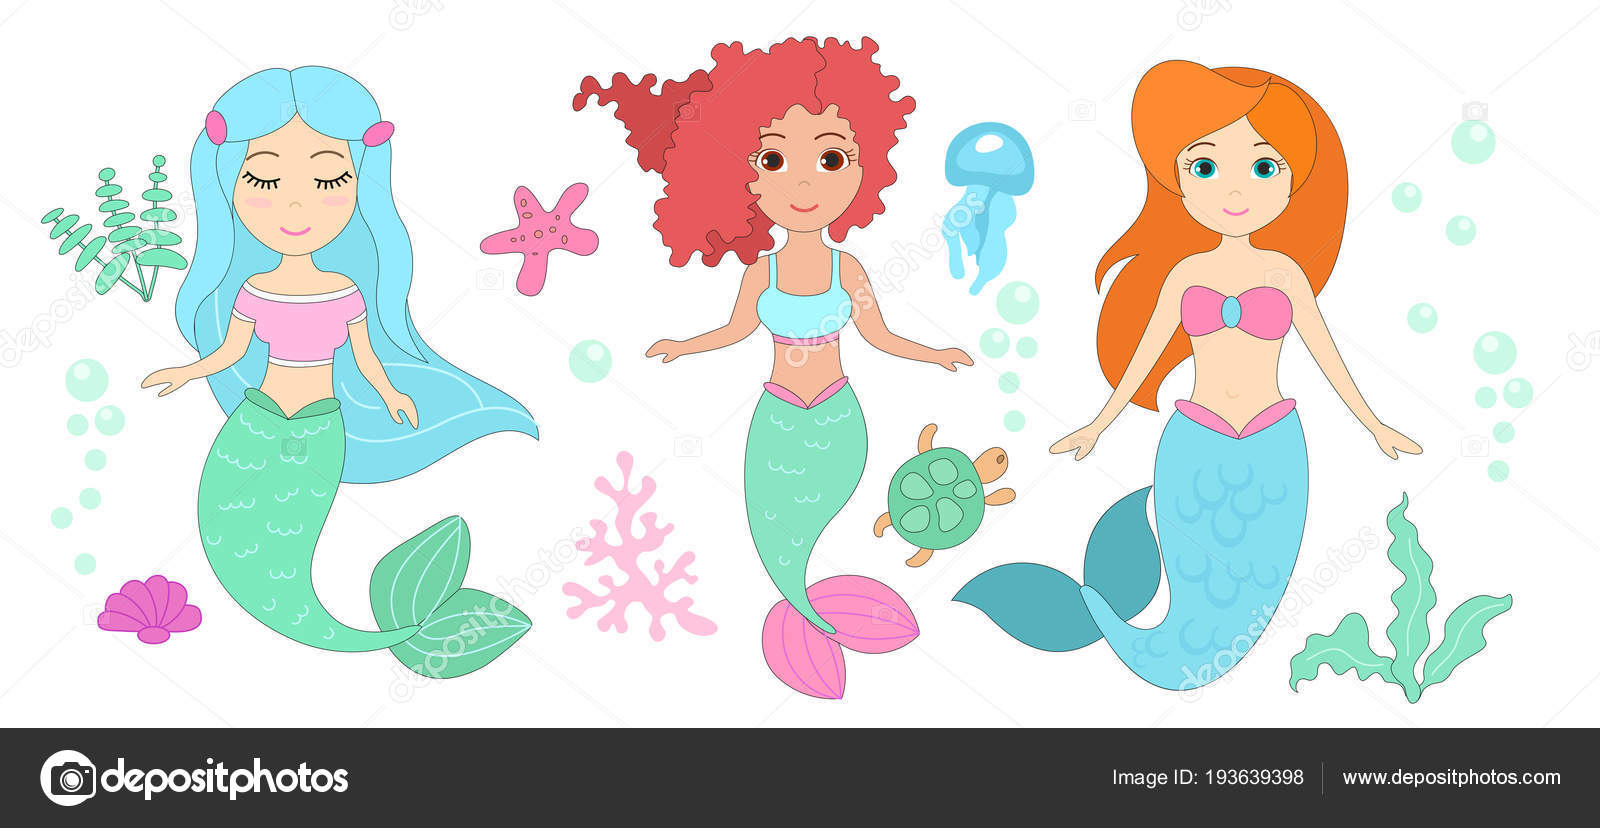 Animated Pictures Of Seashells vector illustration set of cute mermaids with different hair